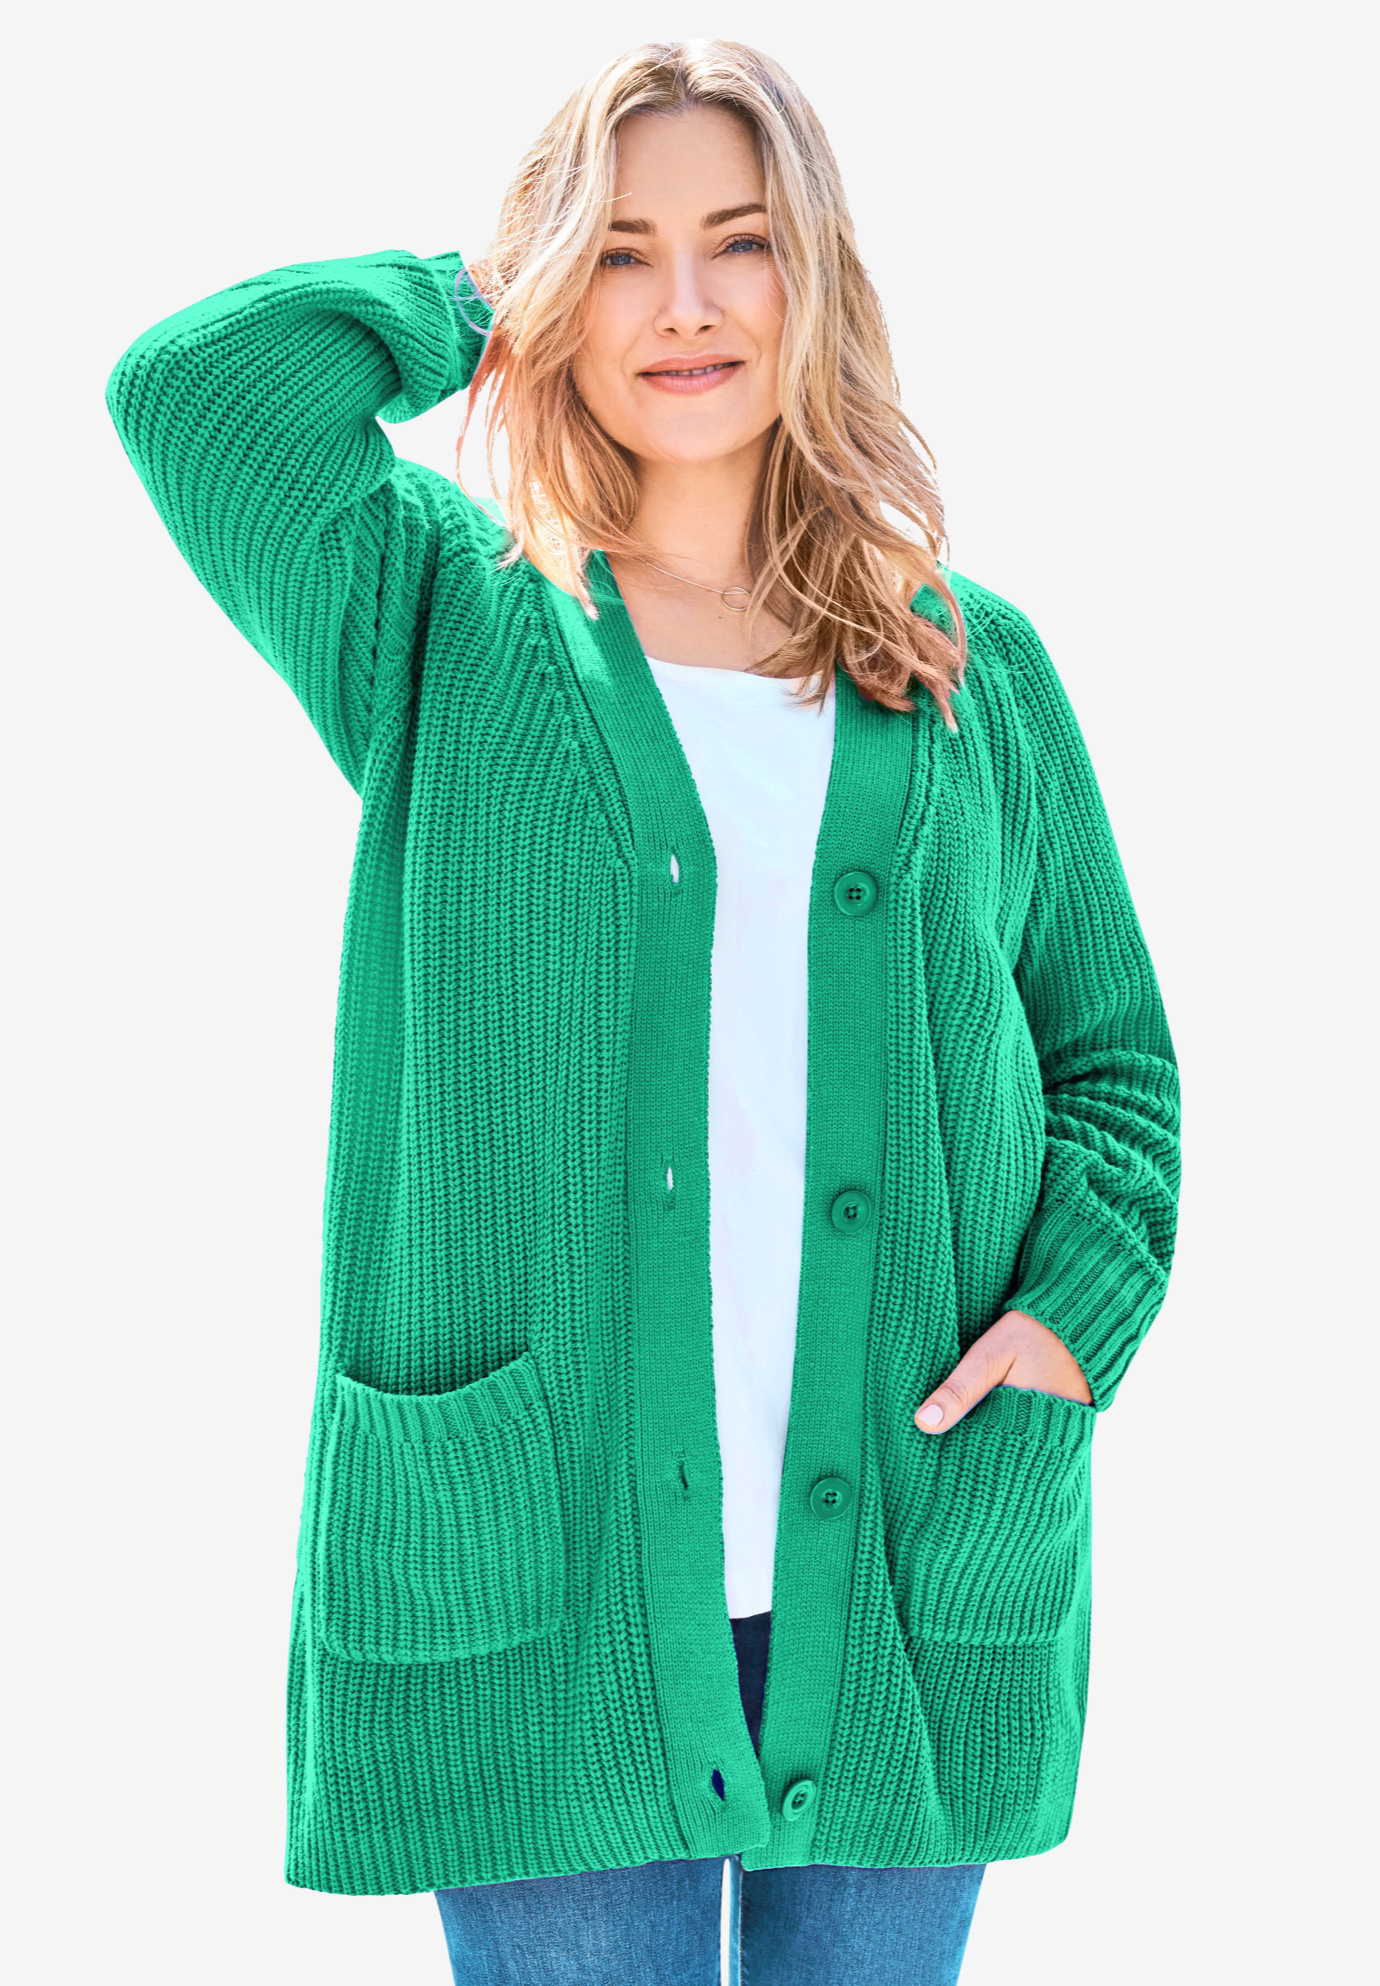 Womens Long Sleeve Knit Sweater Front Sleeve Hockey Tie Lace Up